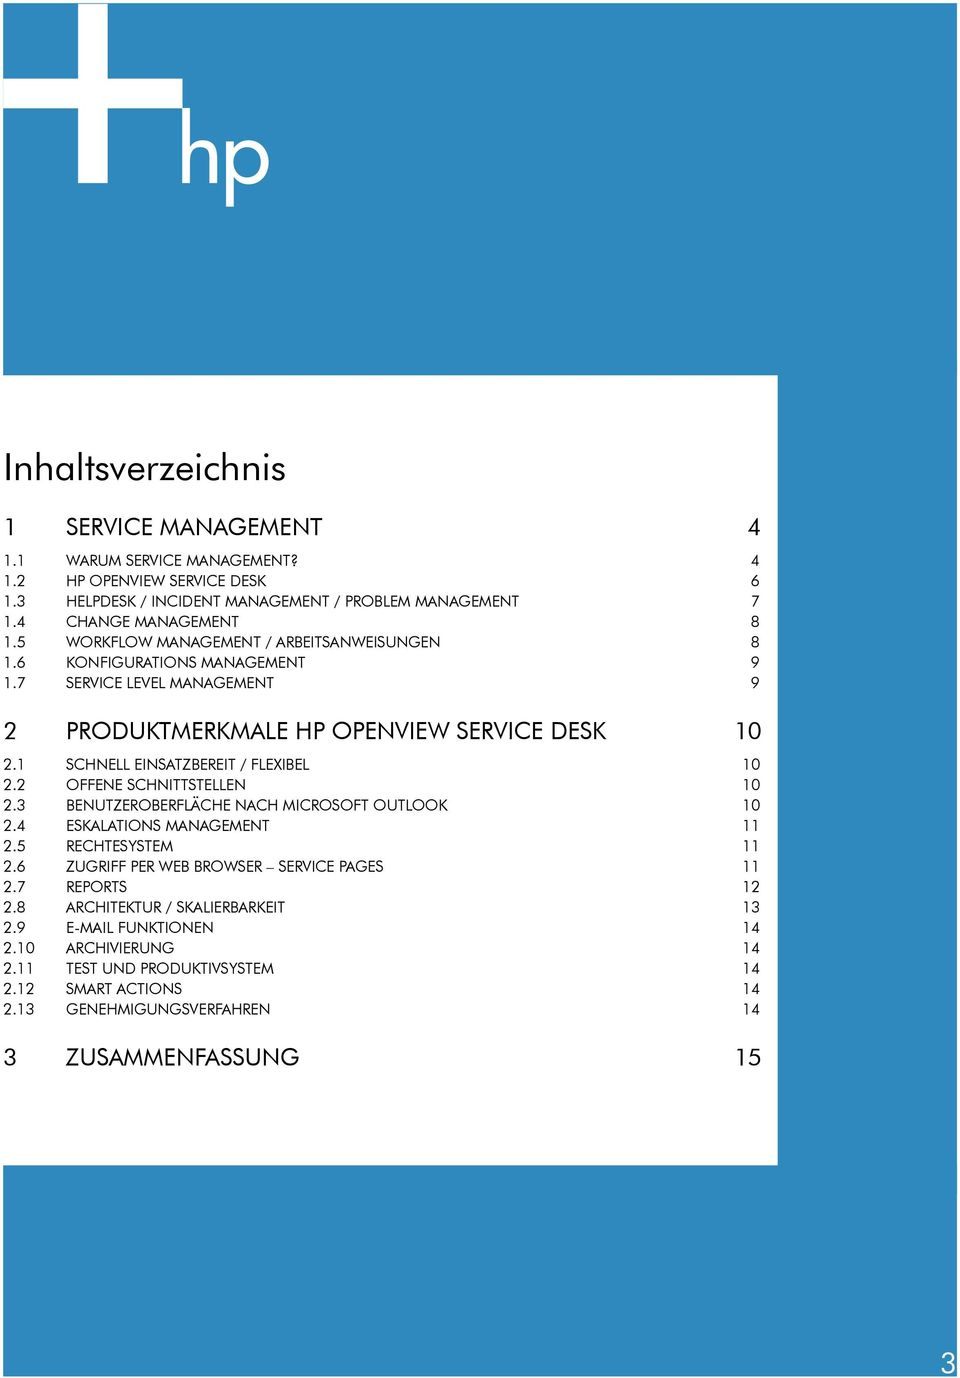 1 SCHNELL EINSATZBEREIT / FLEXIBEL 10 2.2 OFFENE SCHNITTSTELLEN 10 2.3 BENUTZEROBERFLÄCHE NACH MICROSOFT OUTLOOK 10 2.4 ESKALATIONS MANAGEMENT 11 2.5 RECHTESYSTEM 11 2.